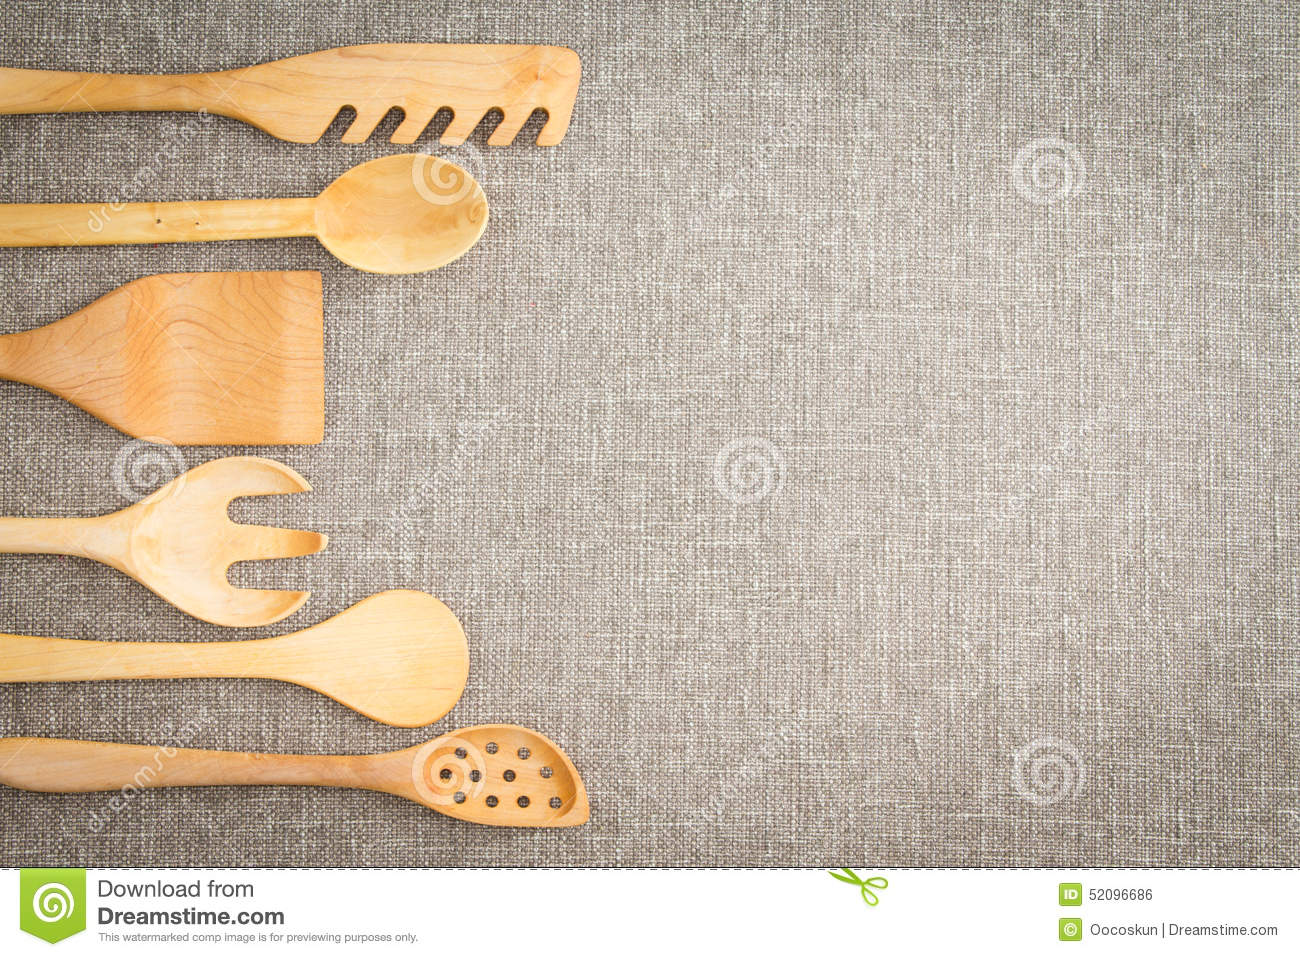 Baking clipart food preparation Wooden Food Cooking As Preparation